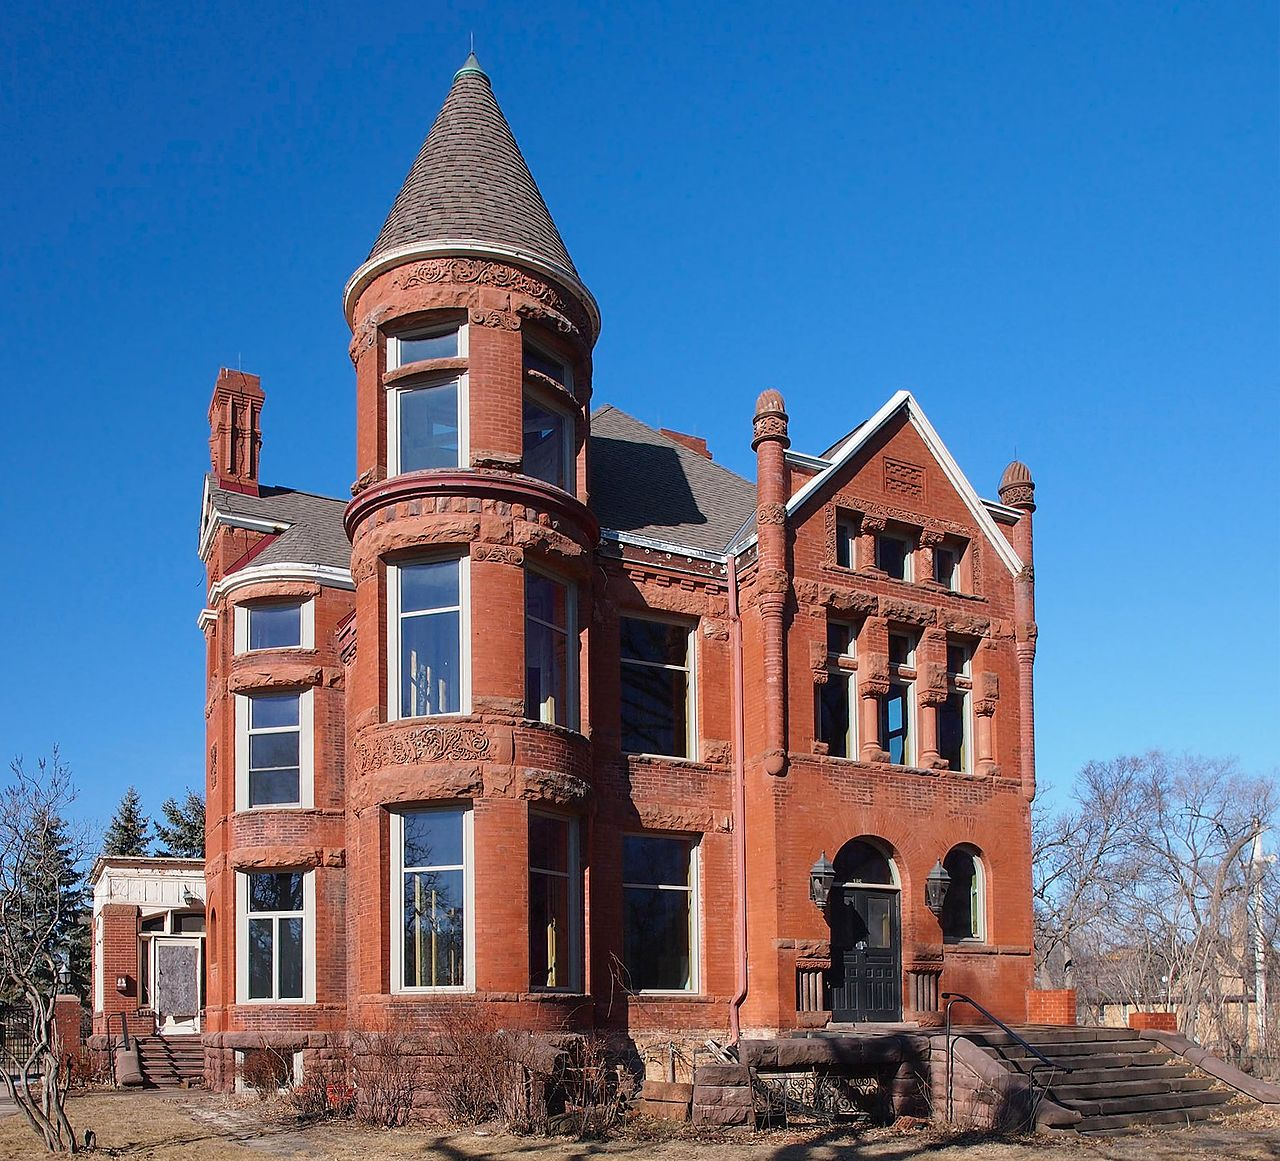 The Foley–Brower–Bohmer House was built in 1889 and is a fine example of Richardsonian Romanesque architecture.